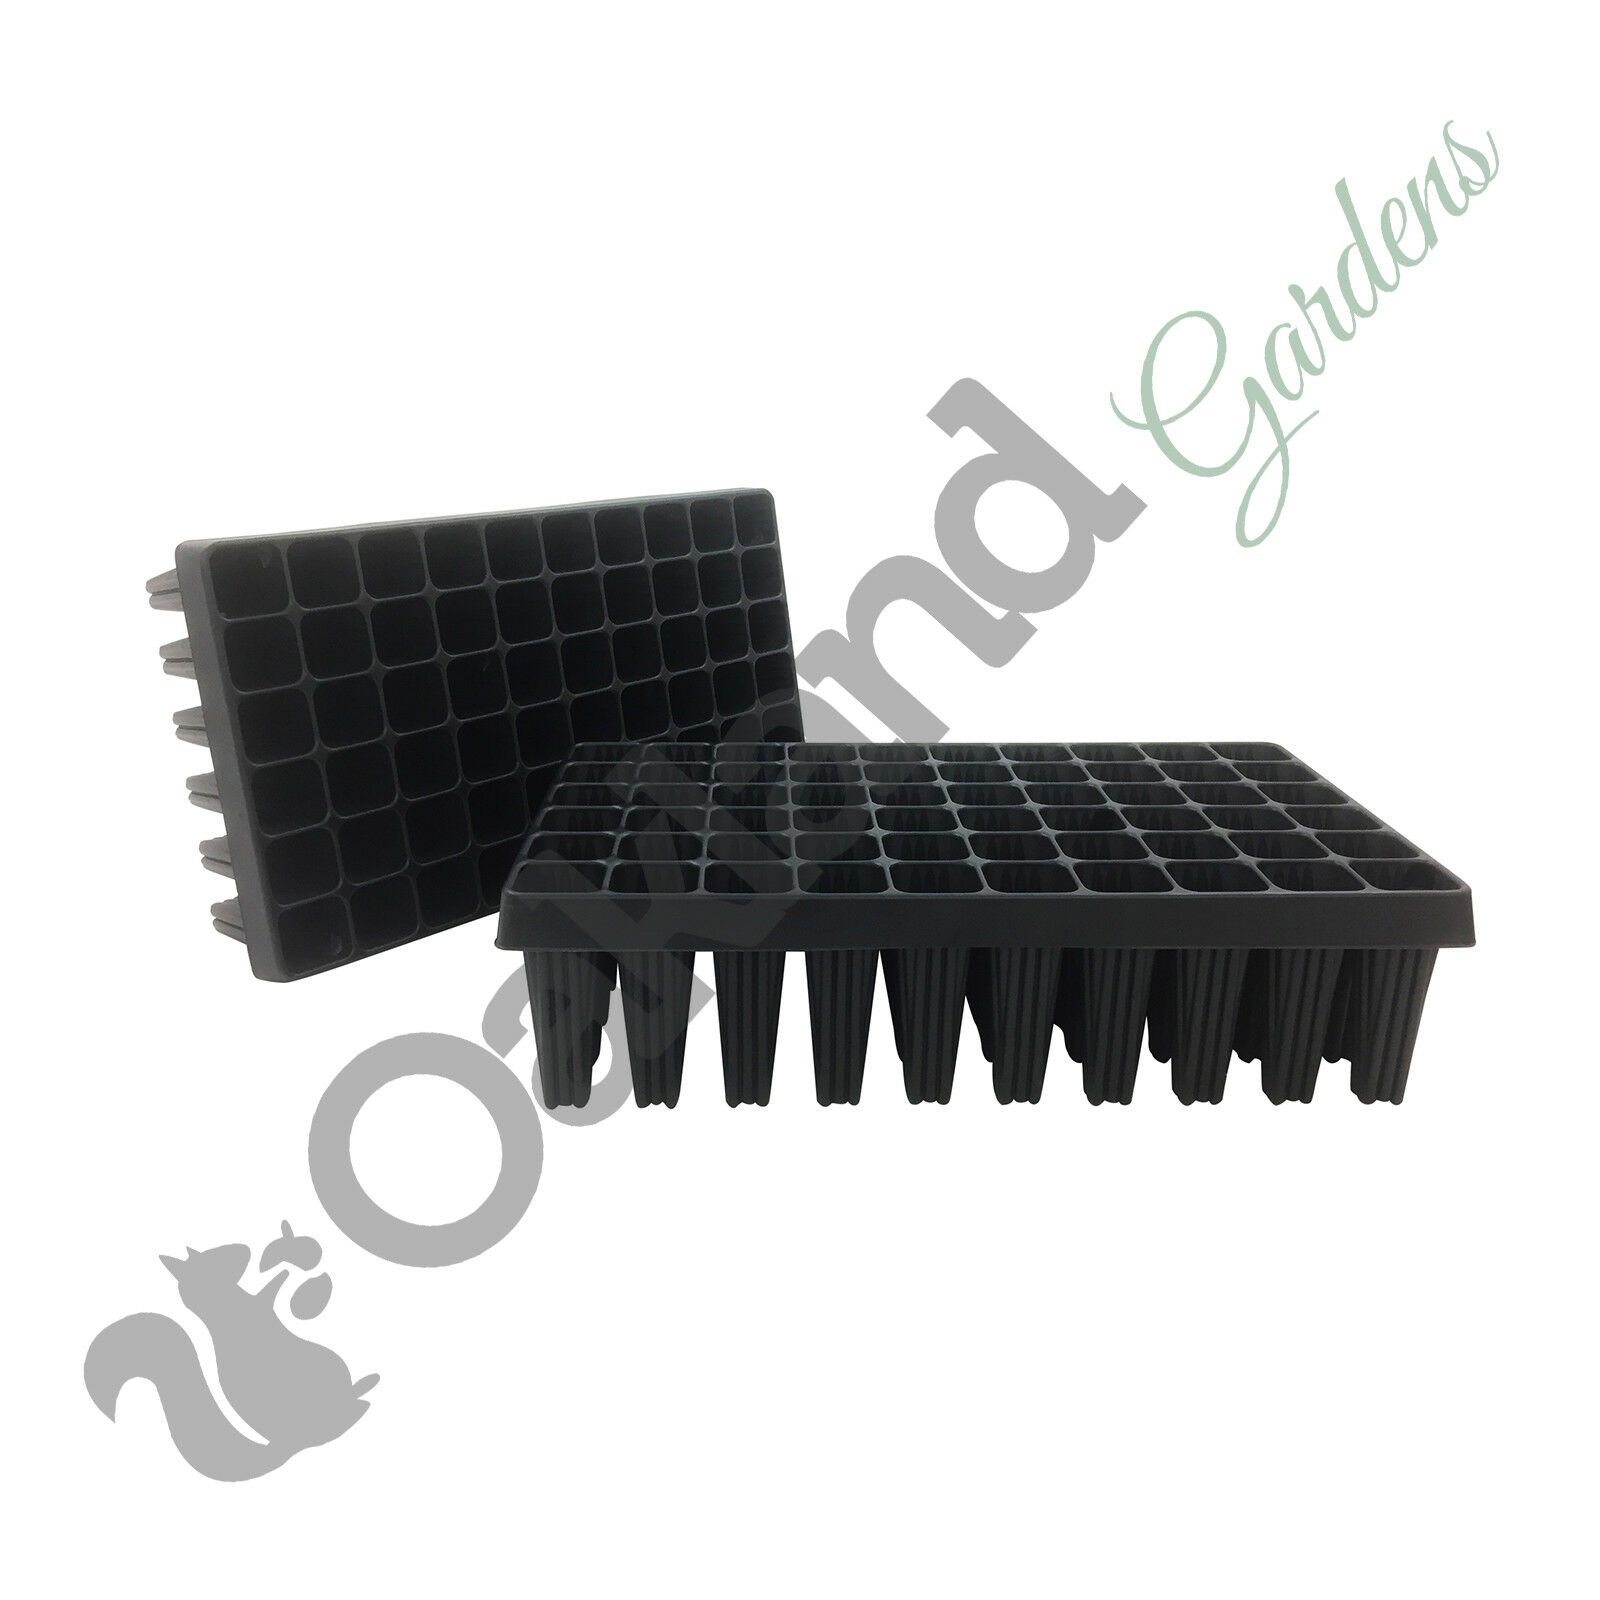 2 x 60 Cell Deep Rootrainers Plug Plant Seed Tray Root trainers Extra Large